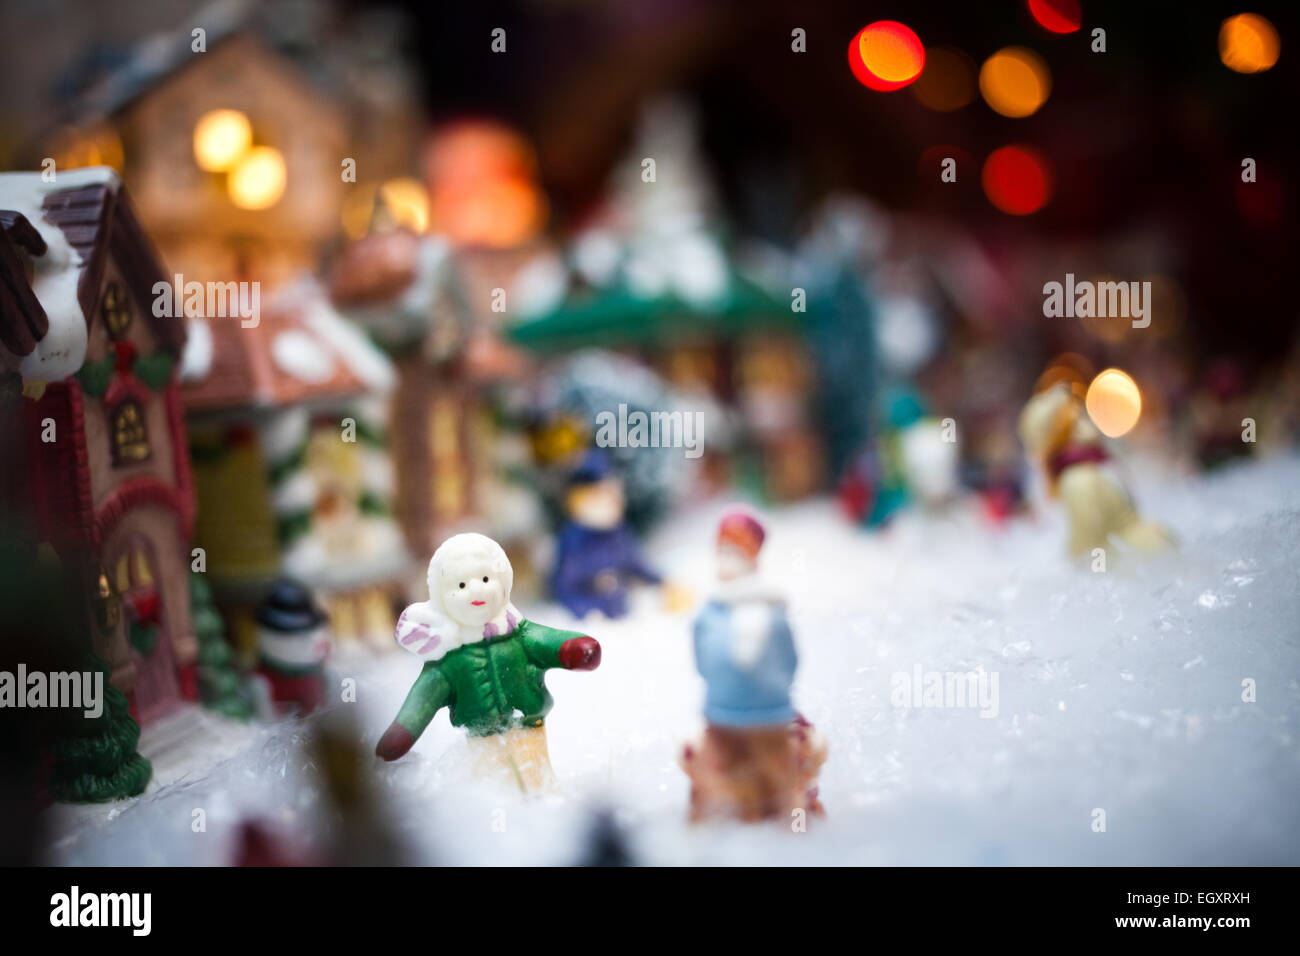 Miniature Christmas Village Stock Photos Miniature Christmas